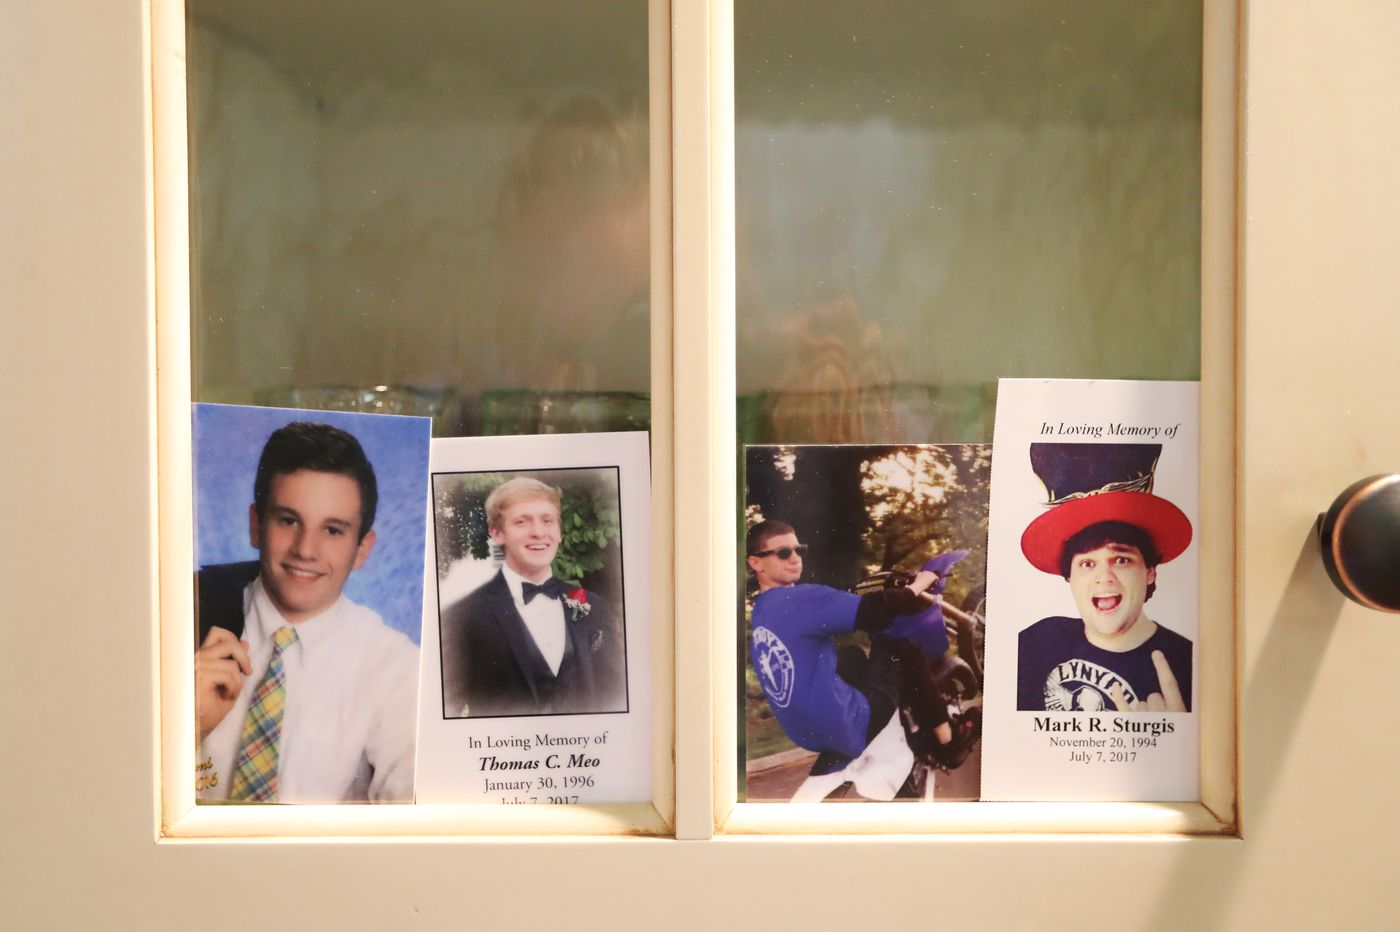 Families of Cosmo DiNardo murder victims speak out, Pa. to pay $2M to fight teacher shortage | Morning Newsletter